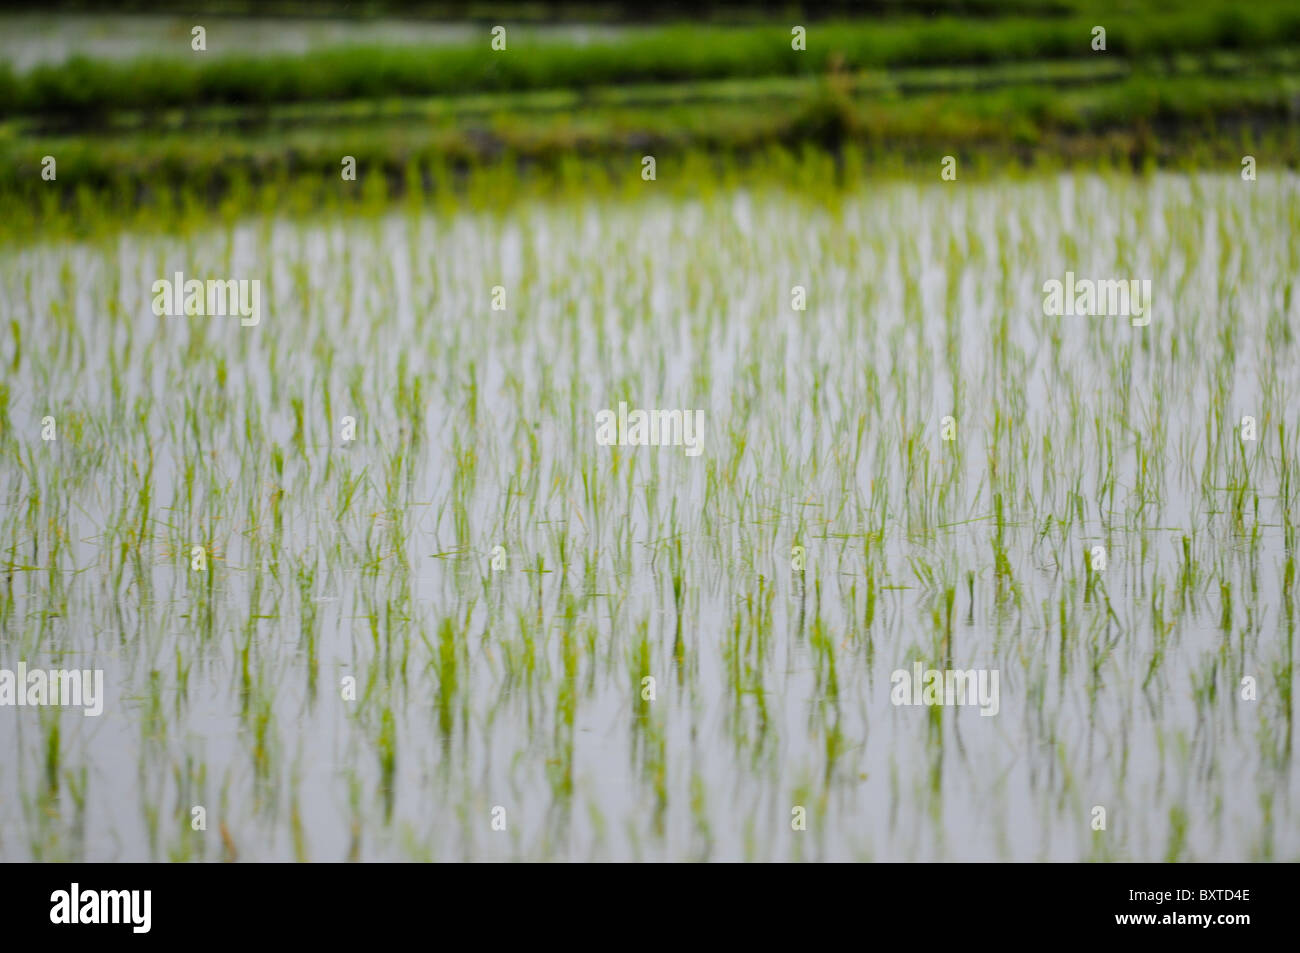 A rice paddy field - Stock Image